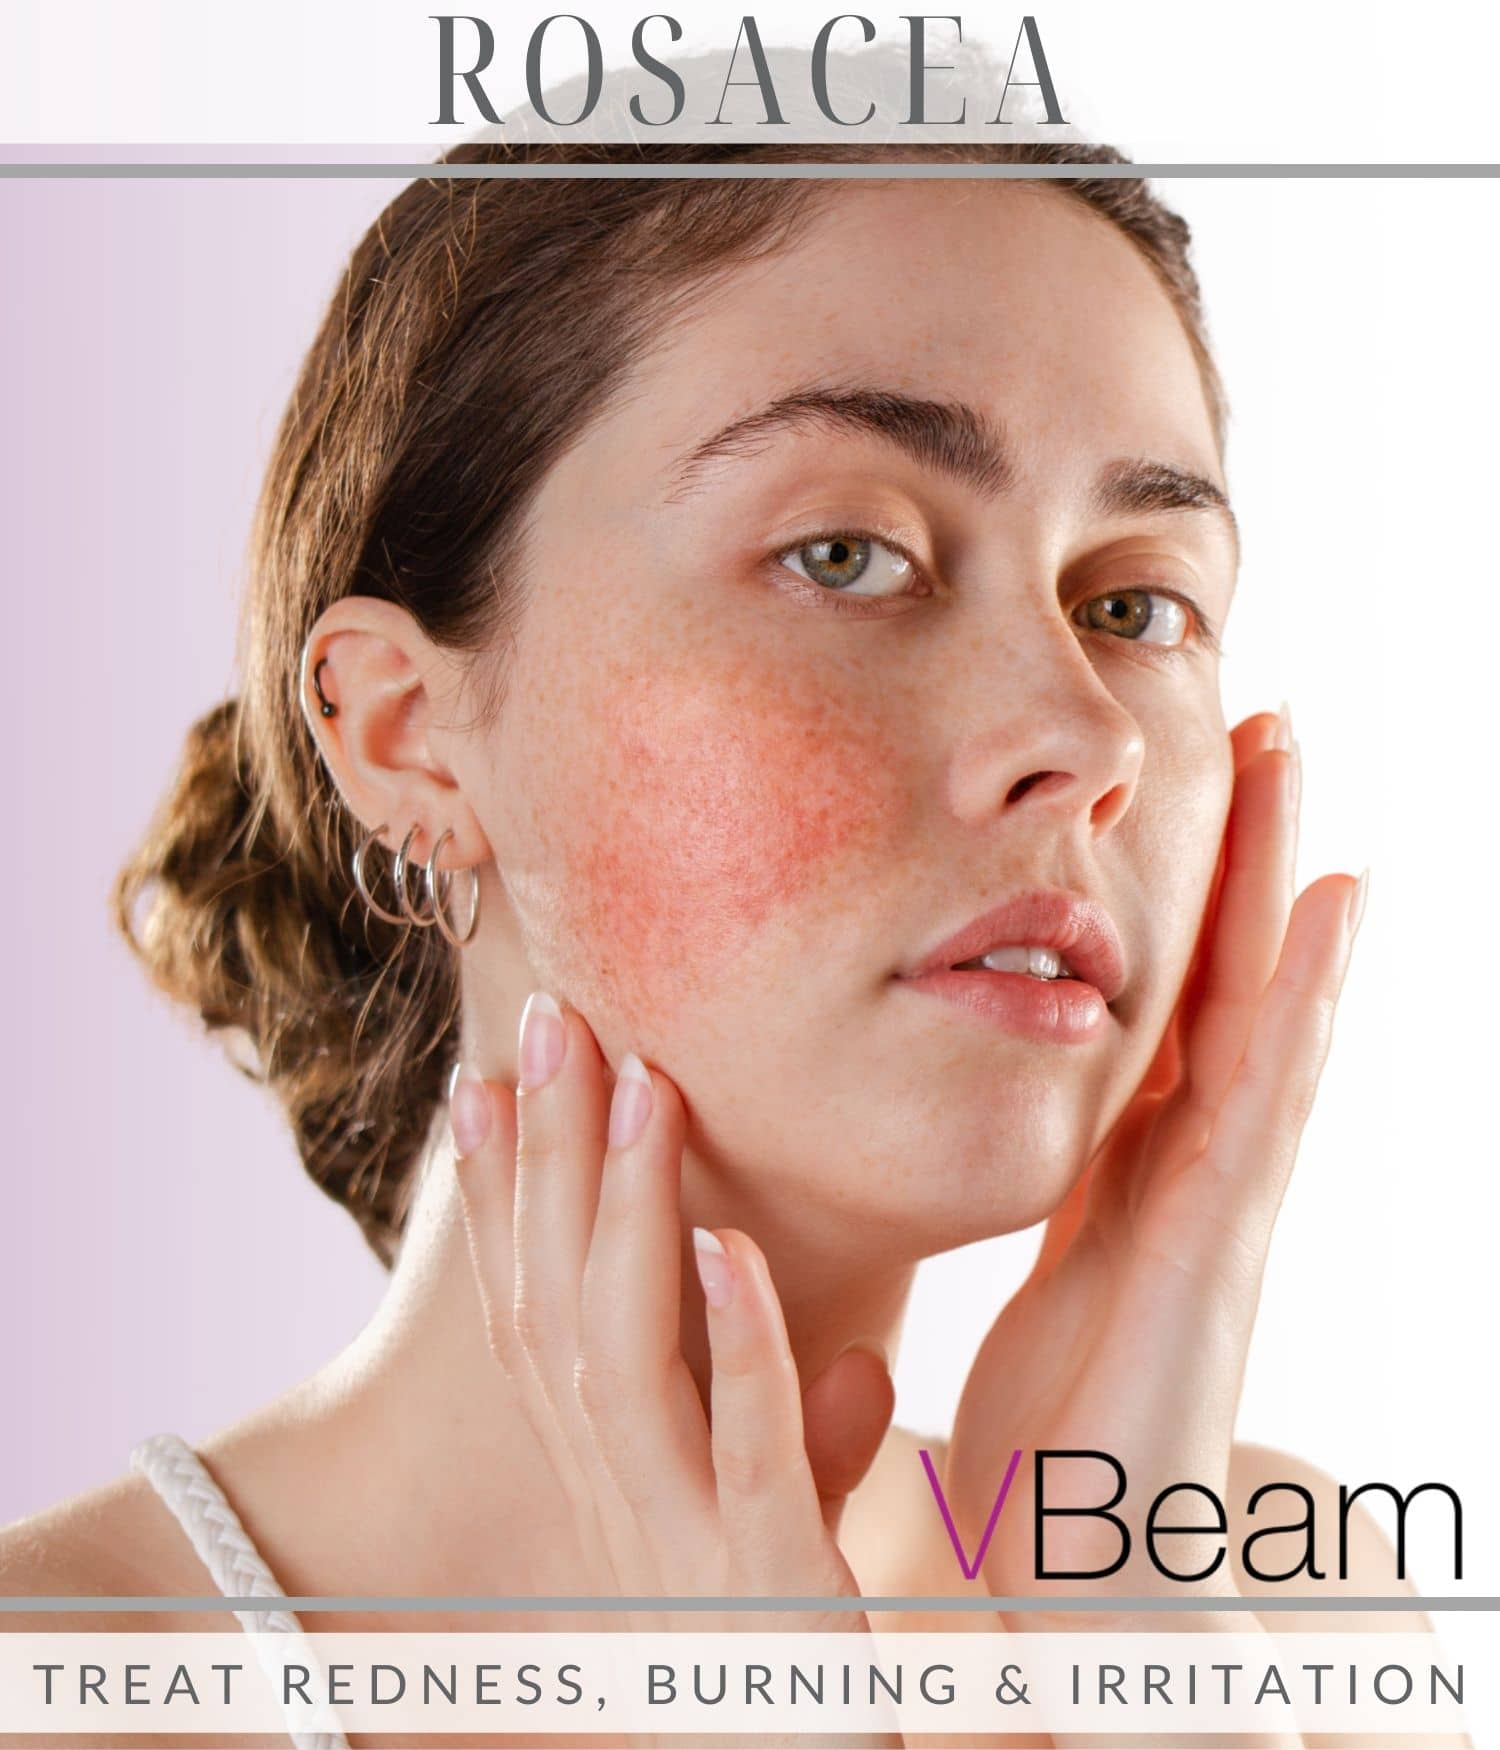 Woman's face from Rosacea treatment with Vbeam laser in Los Angeles, CA